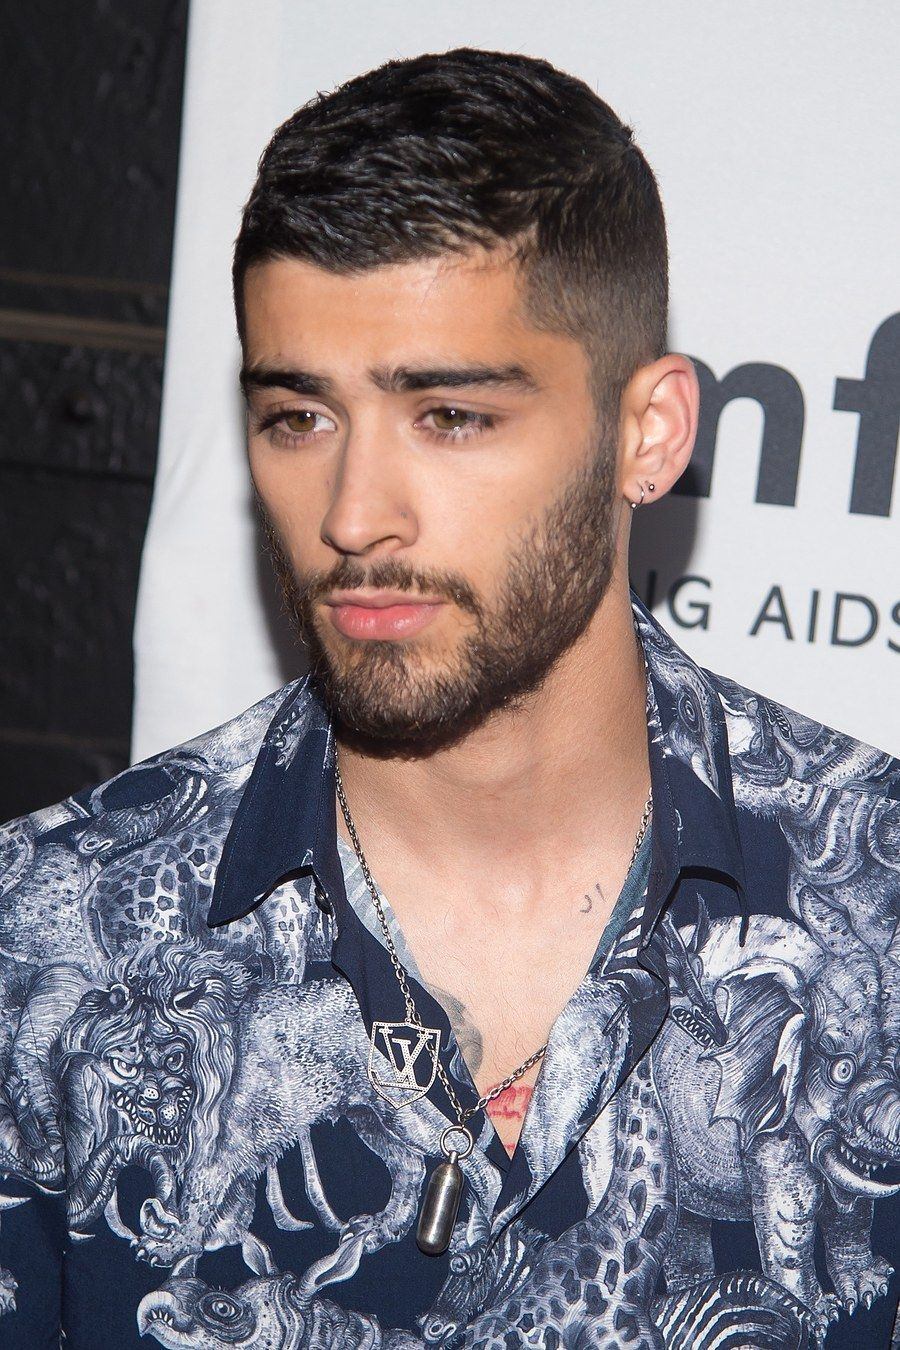 zayn malik's hair length (and color) tends to change from month to